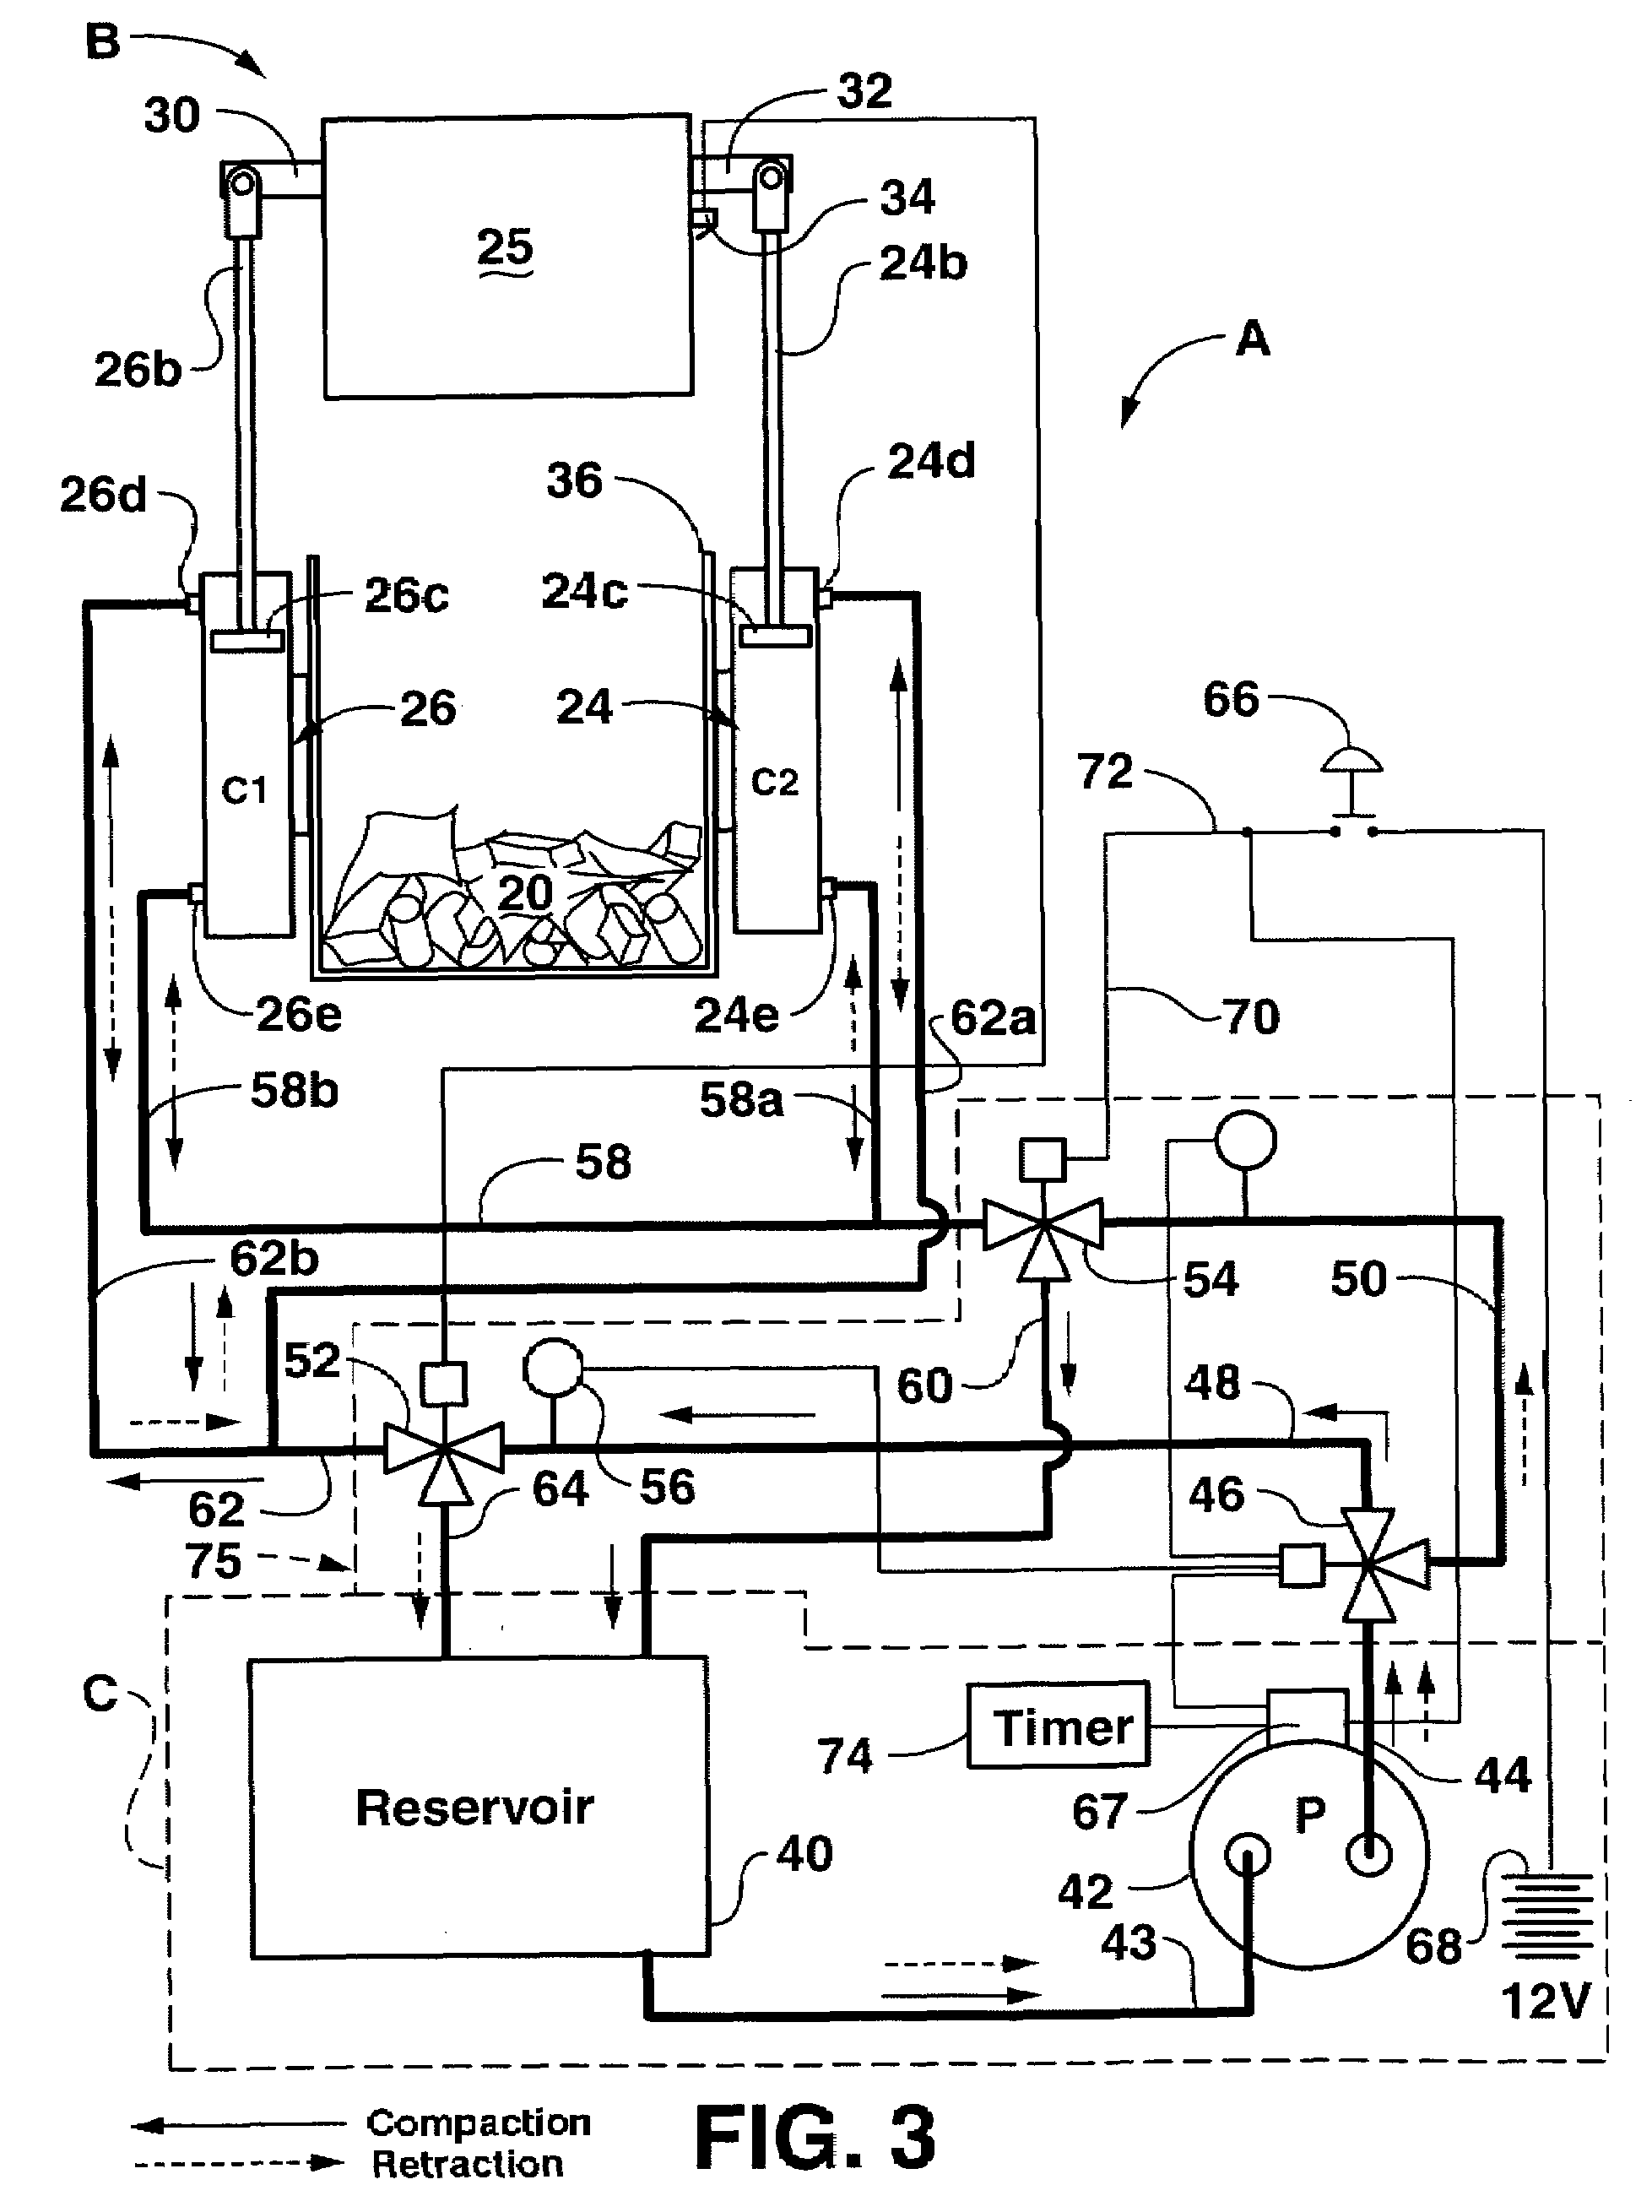 sears trash compactor wiring diagram wiring diagram user sears trash compactor wiring diagram wiring diagram show 3 phase trash compactor wiring diagram wiring diagrams